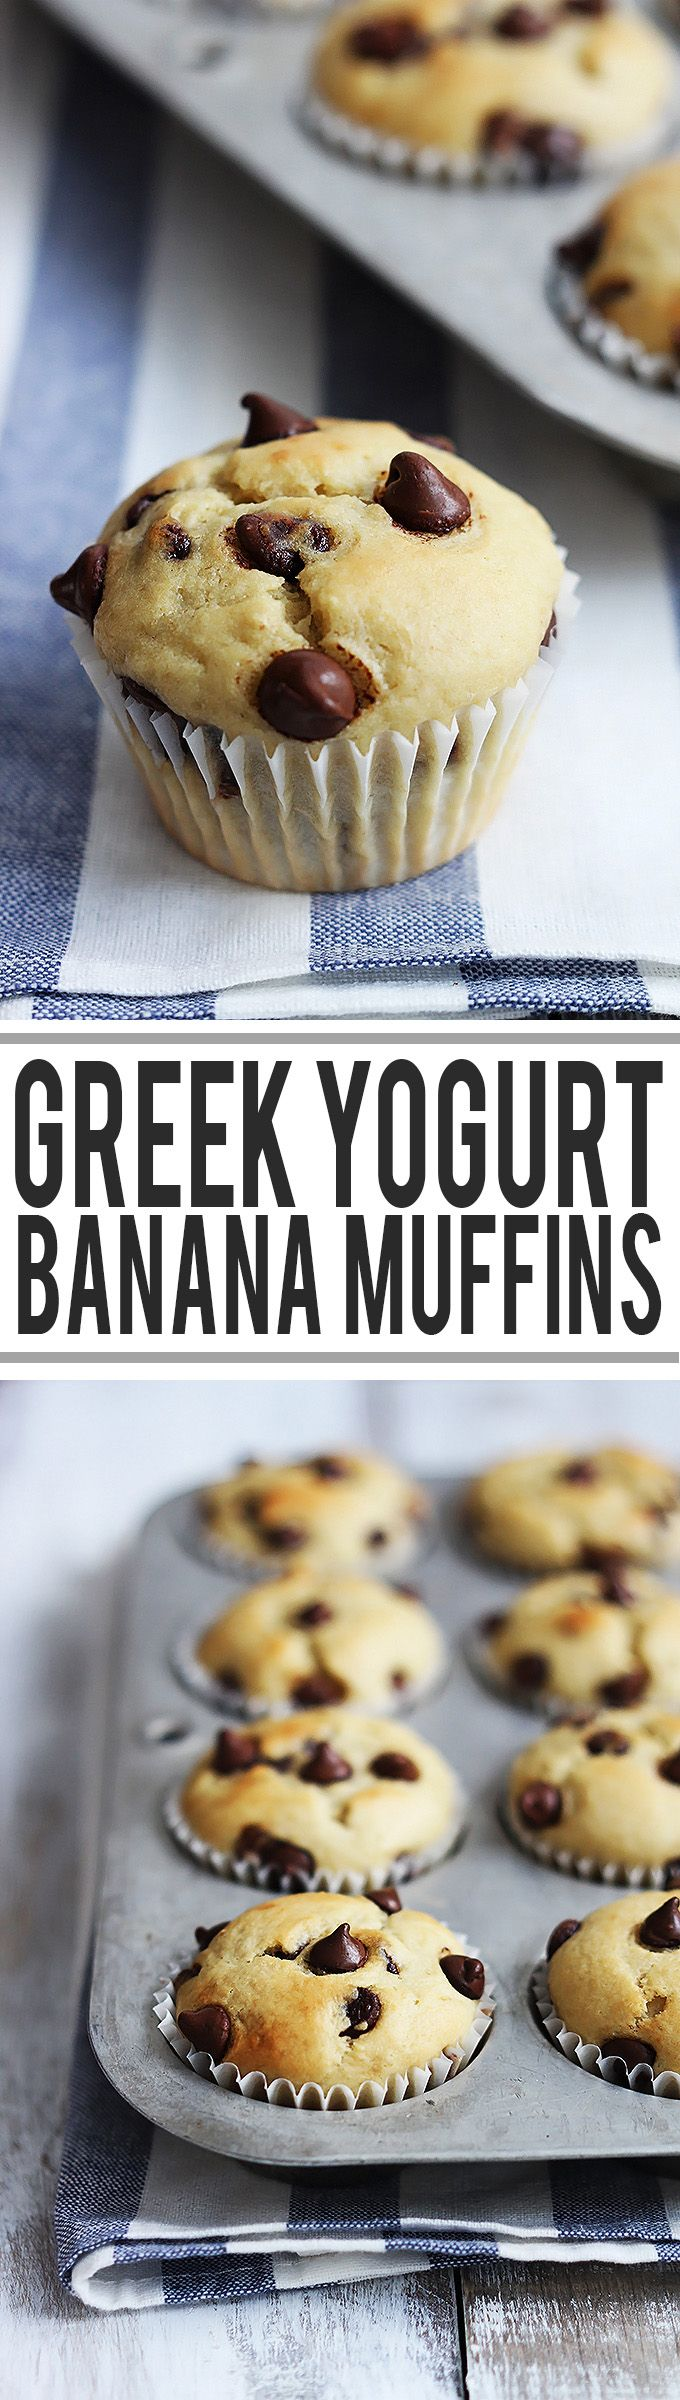 Greek Yogurt Banana Muffins - Easy and fluffy, super-moist banana greek yogurt muffins with a boost of breakfast-worthy protein!